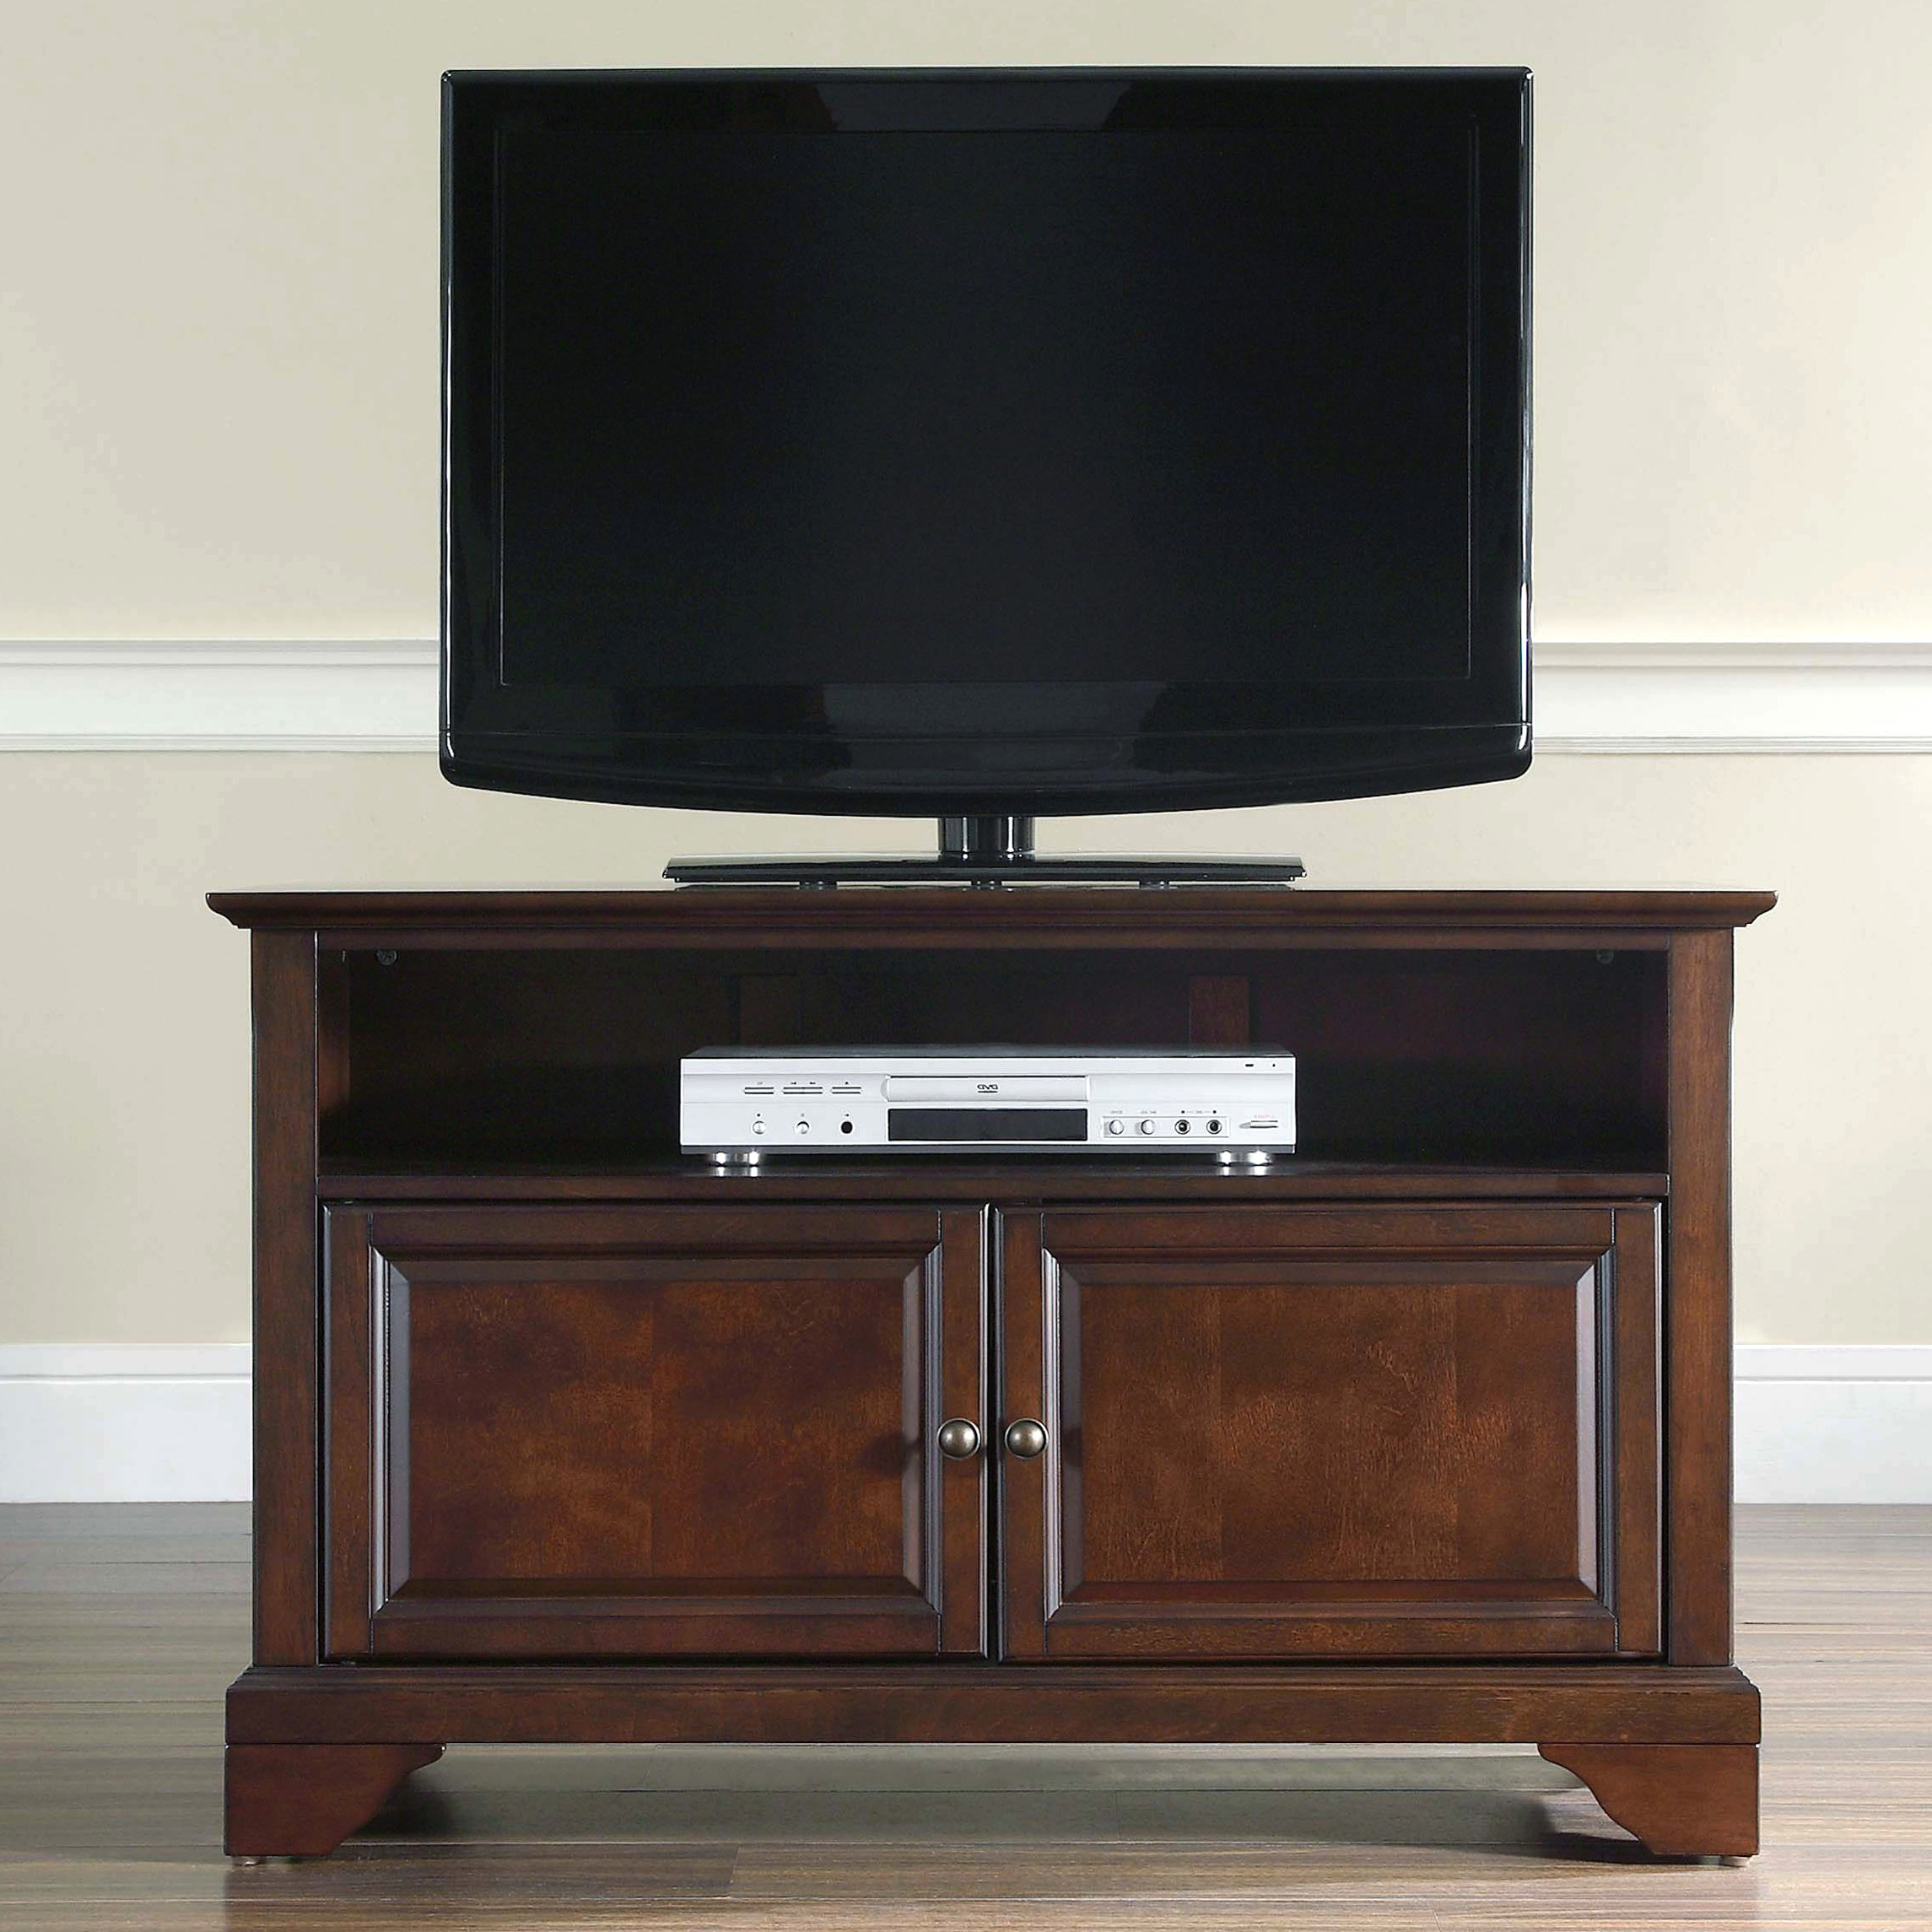 "Hedon Tv Stand For Tvs Up To 42"" Regarding Ericka Tv Stands For Tvs Up To 42"" (View 2 of 20)"